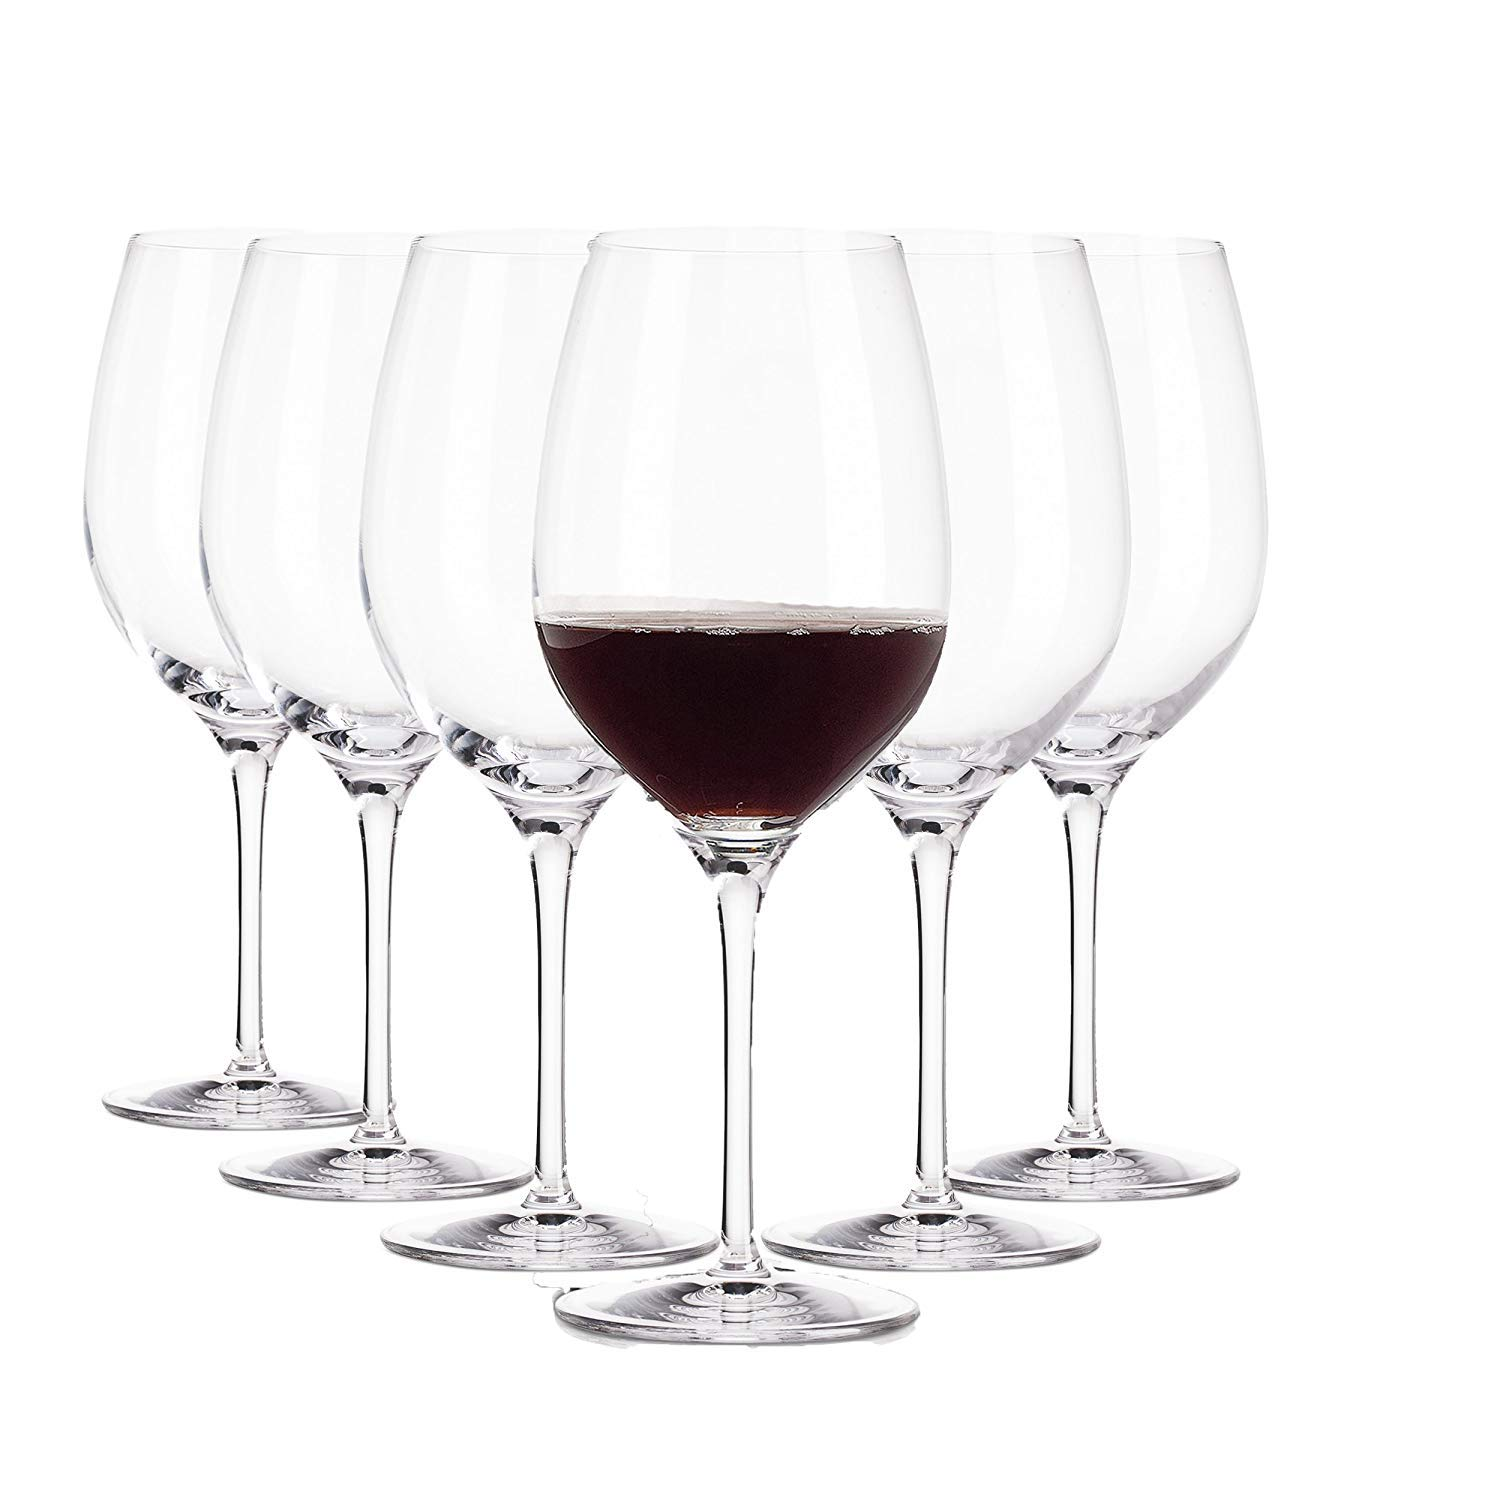 Arcoroc Red wine Glasses / Set of 6 / 370 ml / Ø 65 mm / Up to 5 times more resistant against shocks than similar models / Made in France